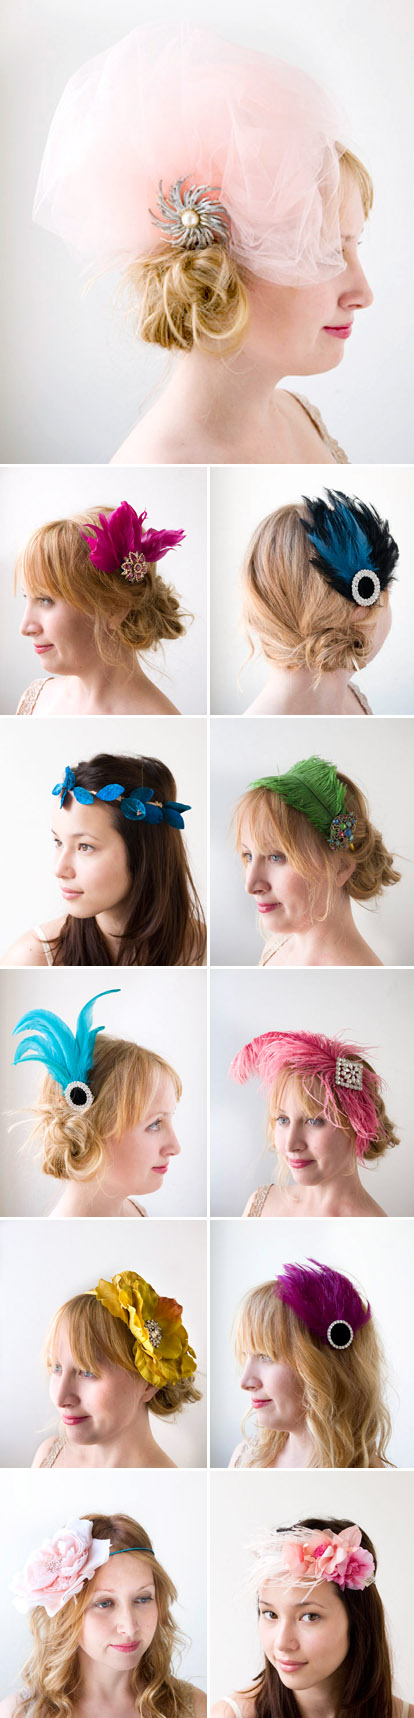 colorful, alternative wedding hair accessories, flowers, feathers, headbands by Ban.do